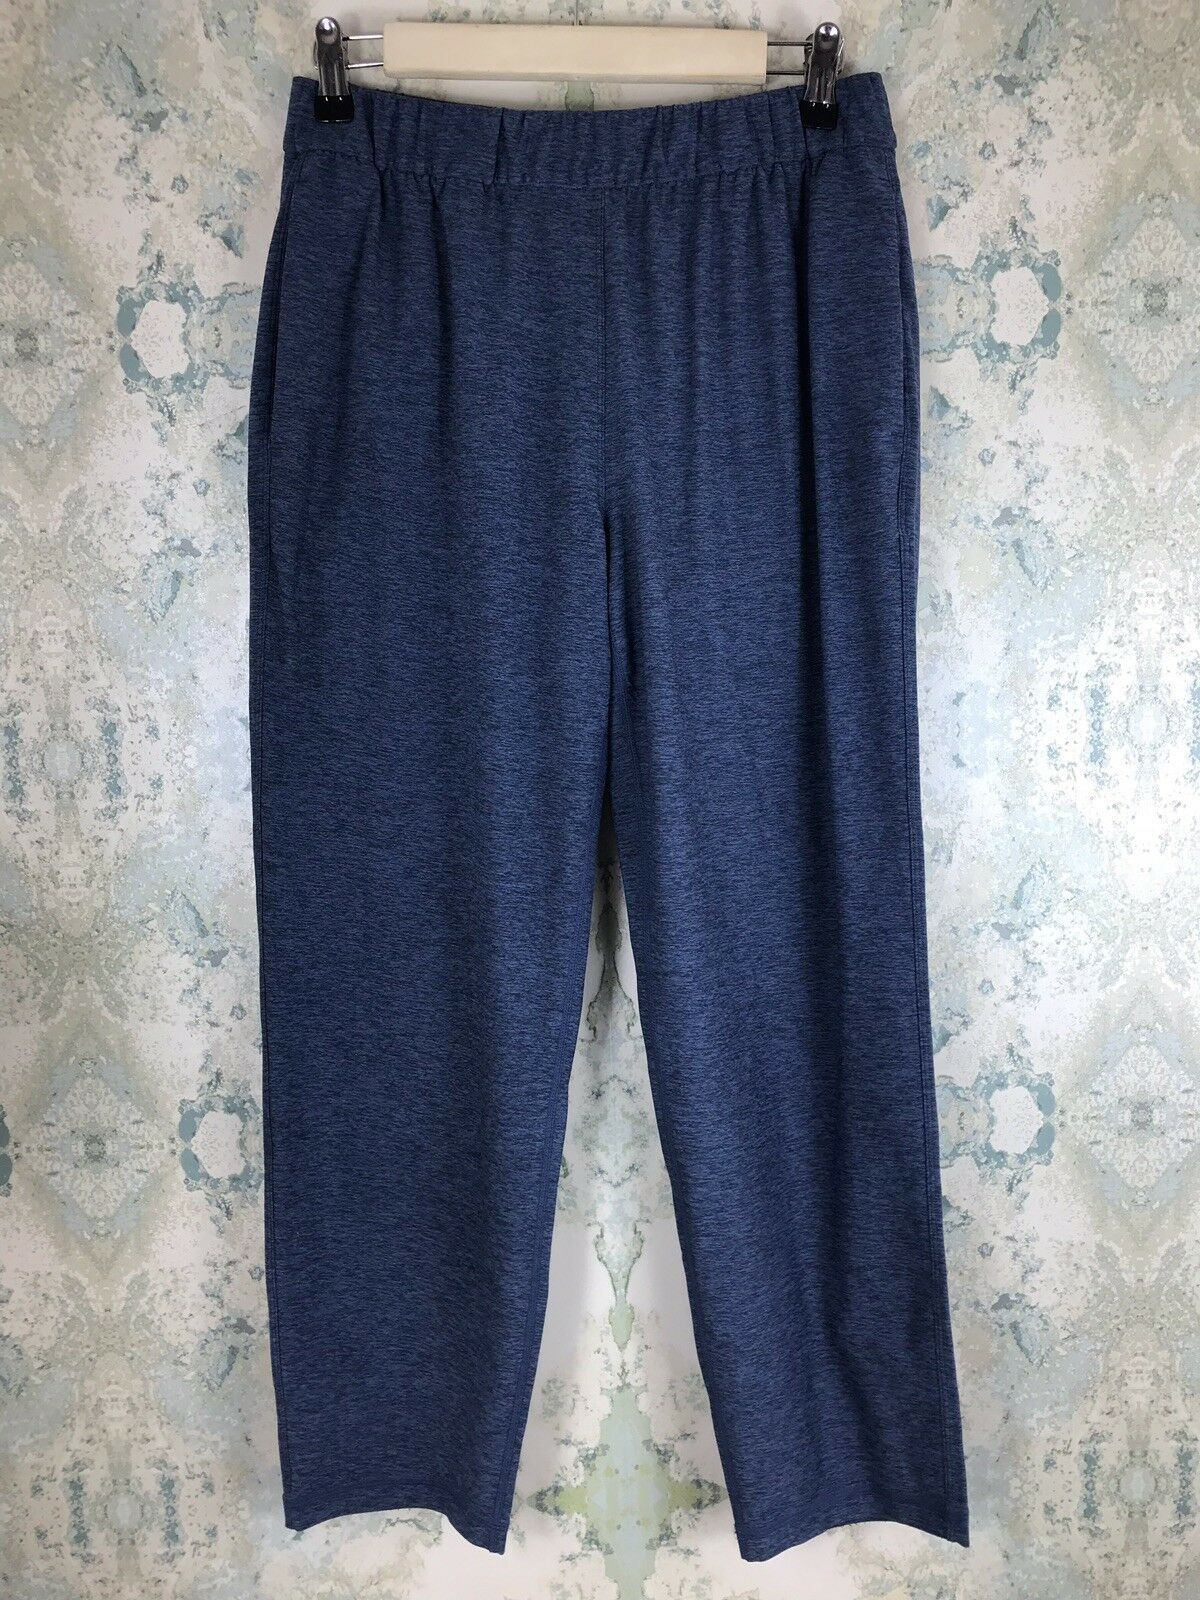 Outdoor Voices bluee Running Casual Gym Crop Sweatpants Pants Small